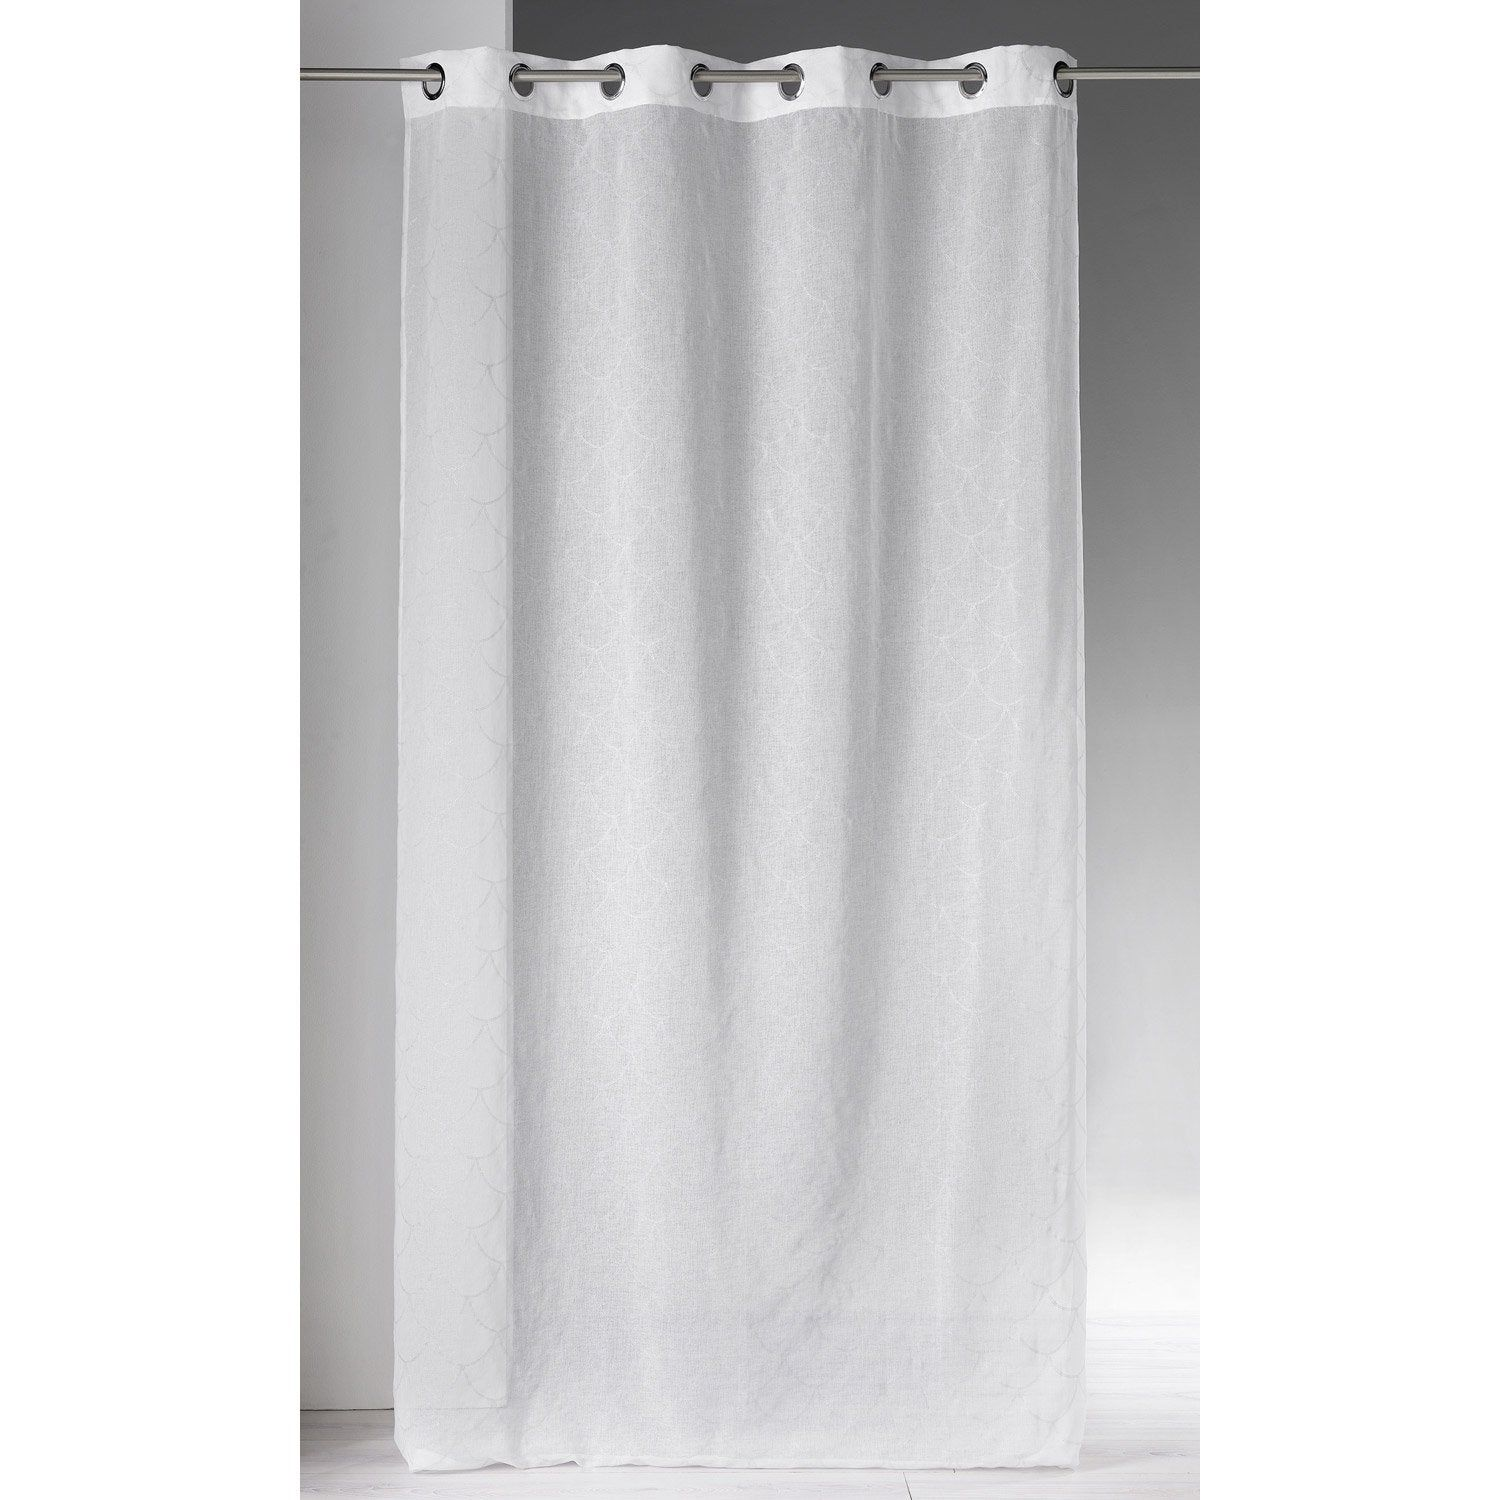 Voilage Tamisant Pesca Blanc L140 X H240 Cm Products